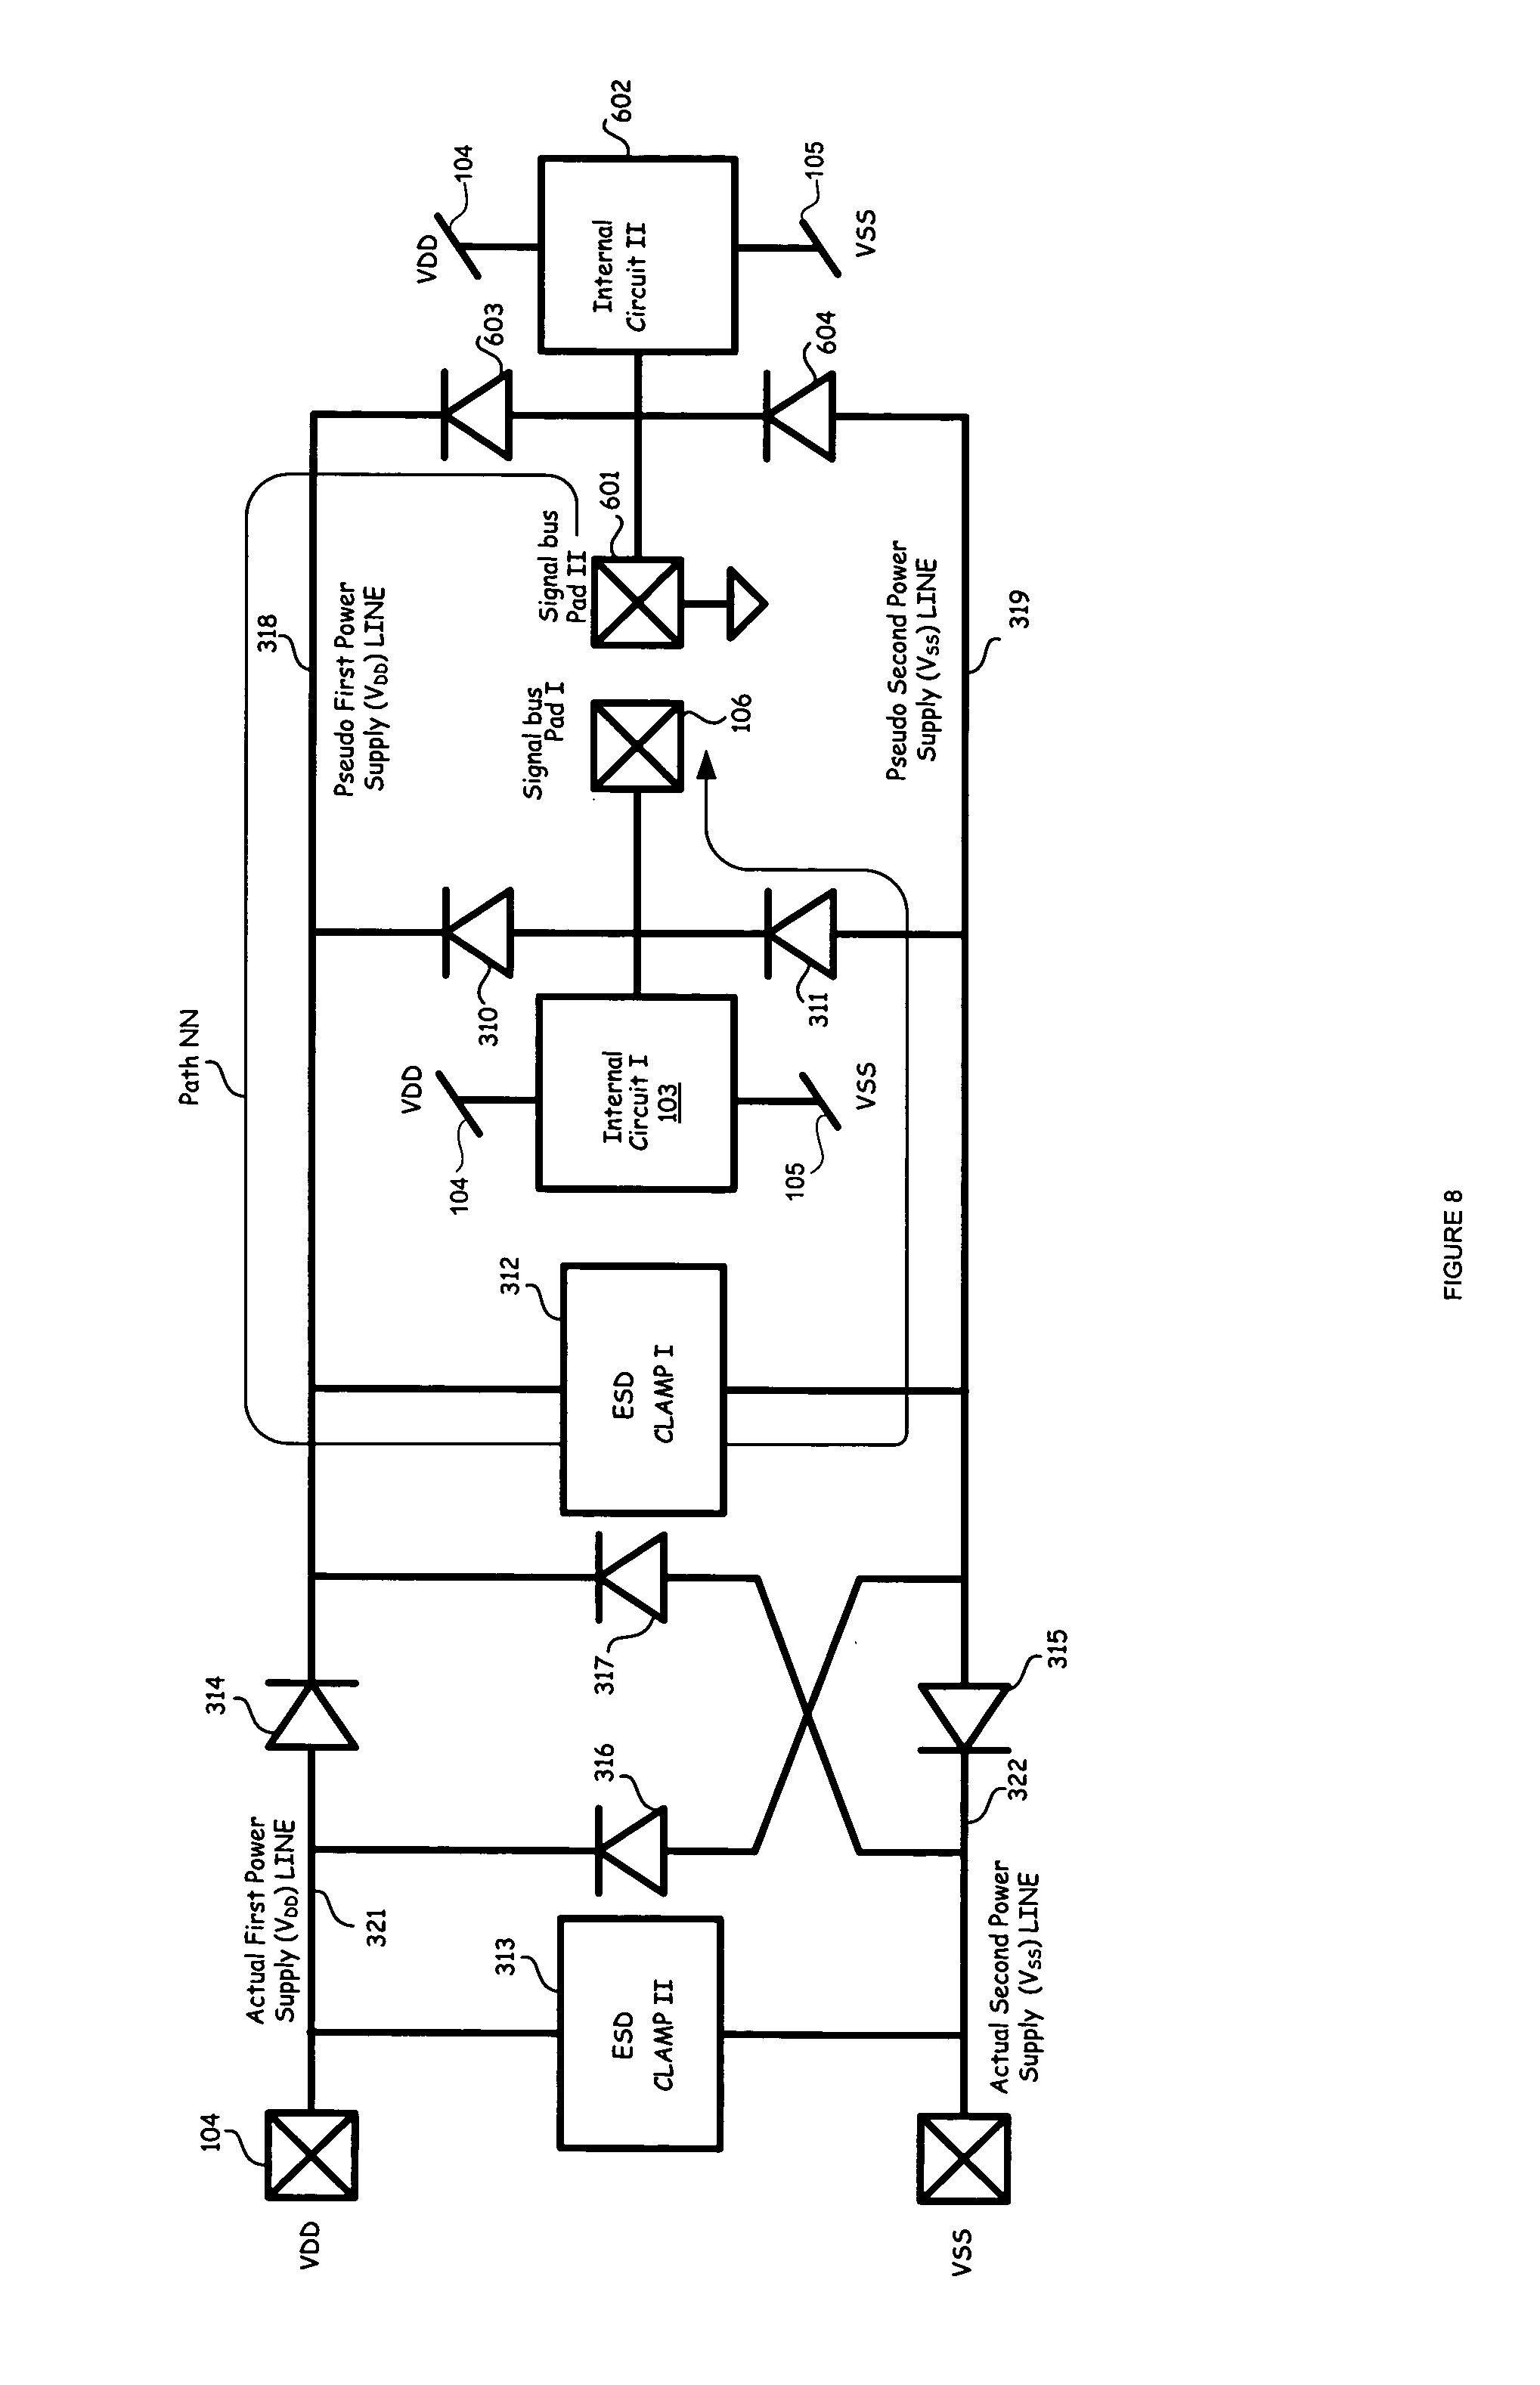 patent us7518844 - over-voltage tolerant esd protection circuit